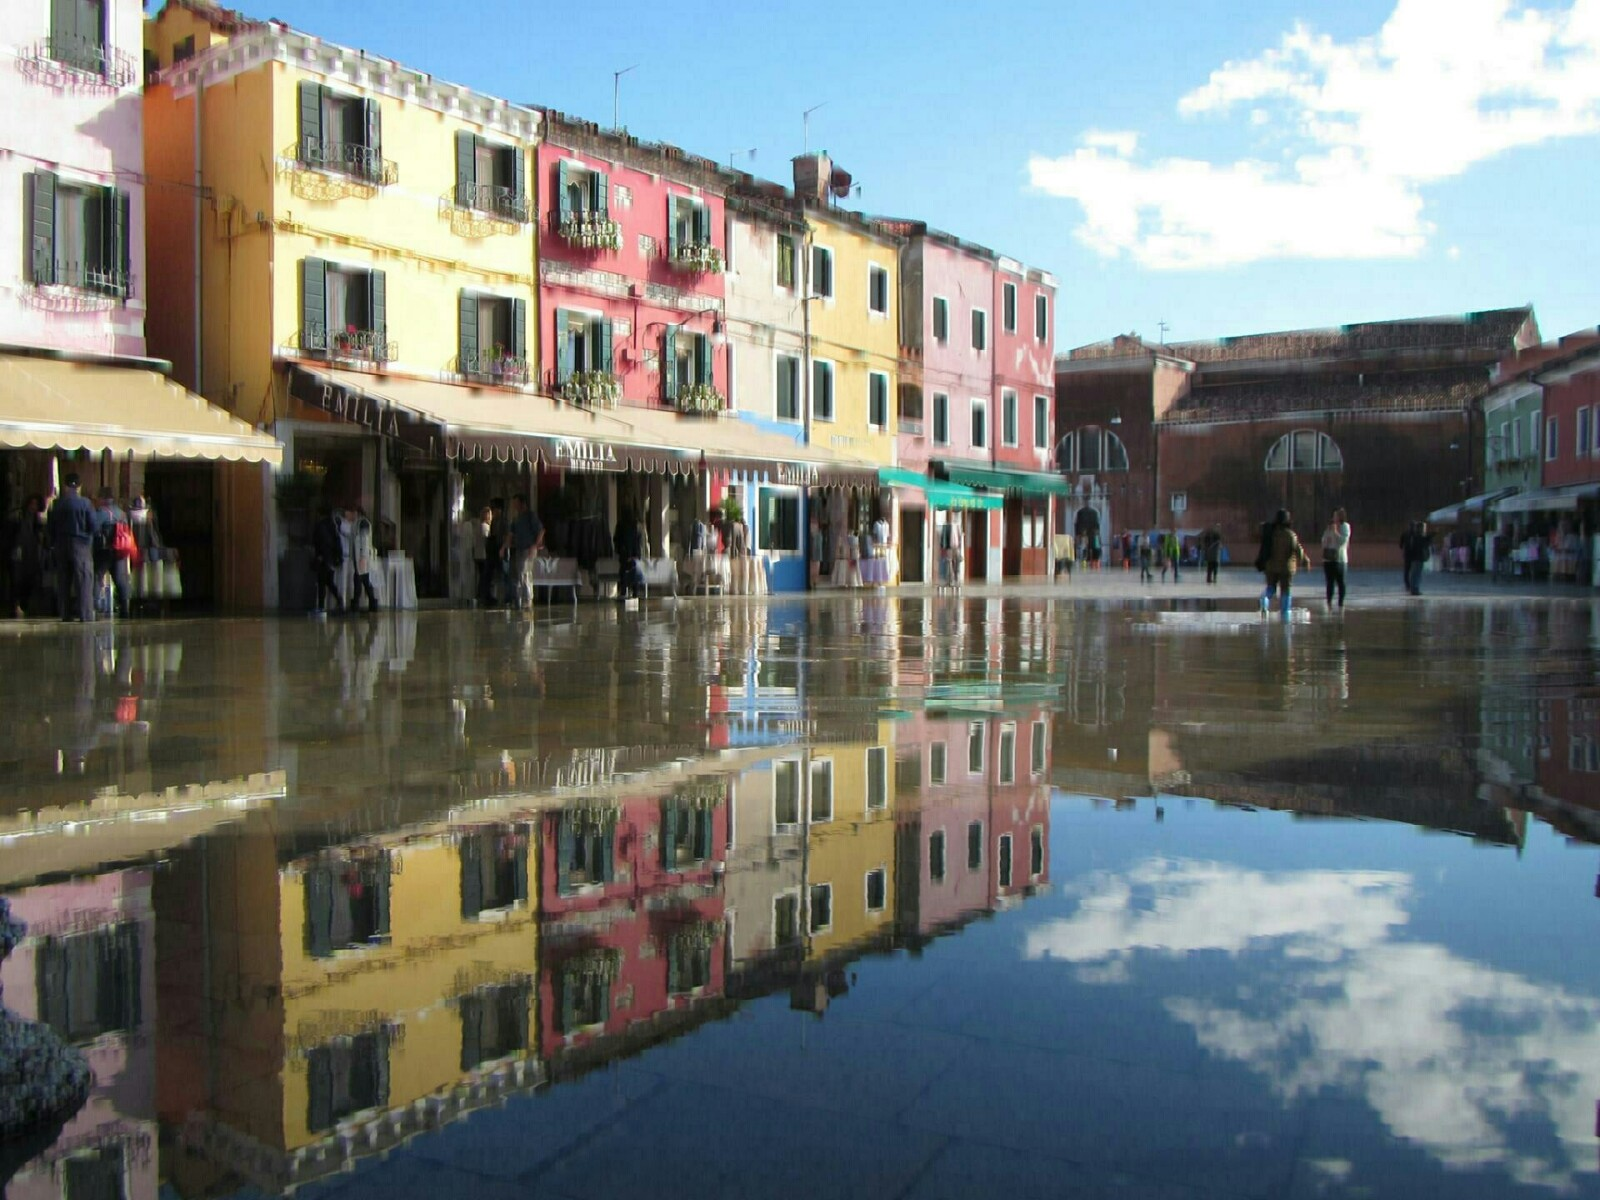 Burano at high tide